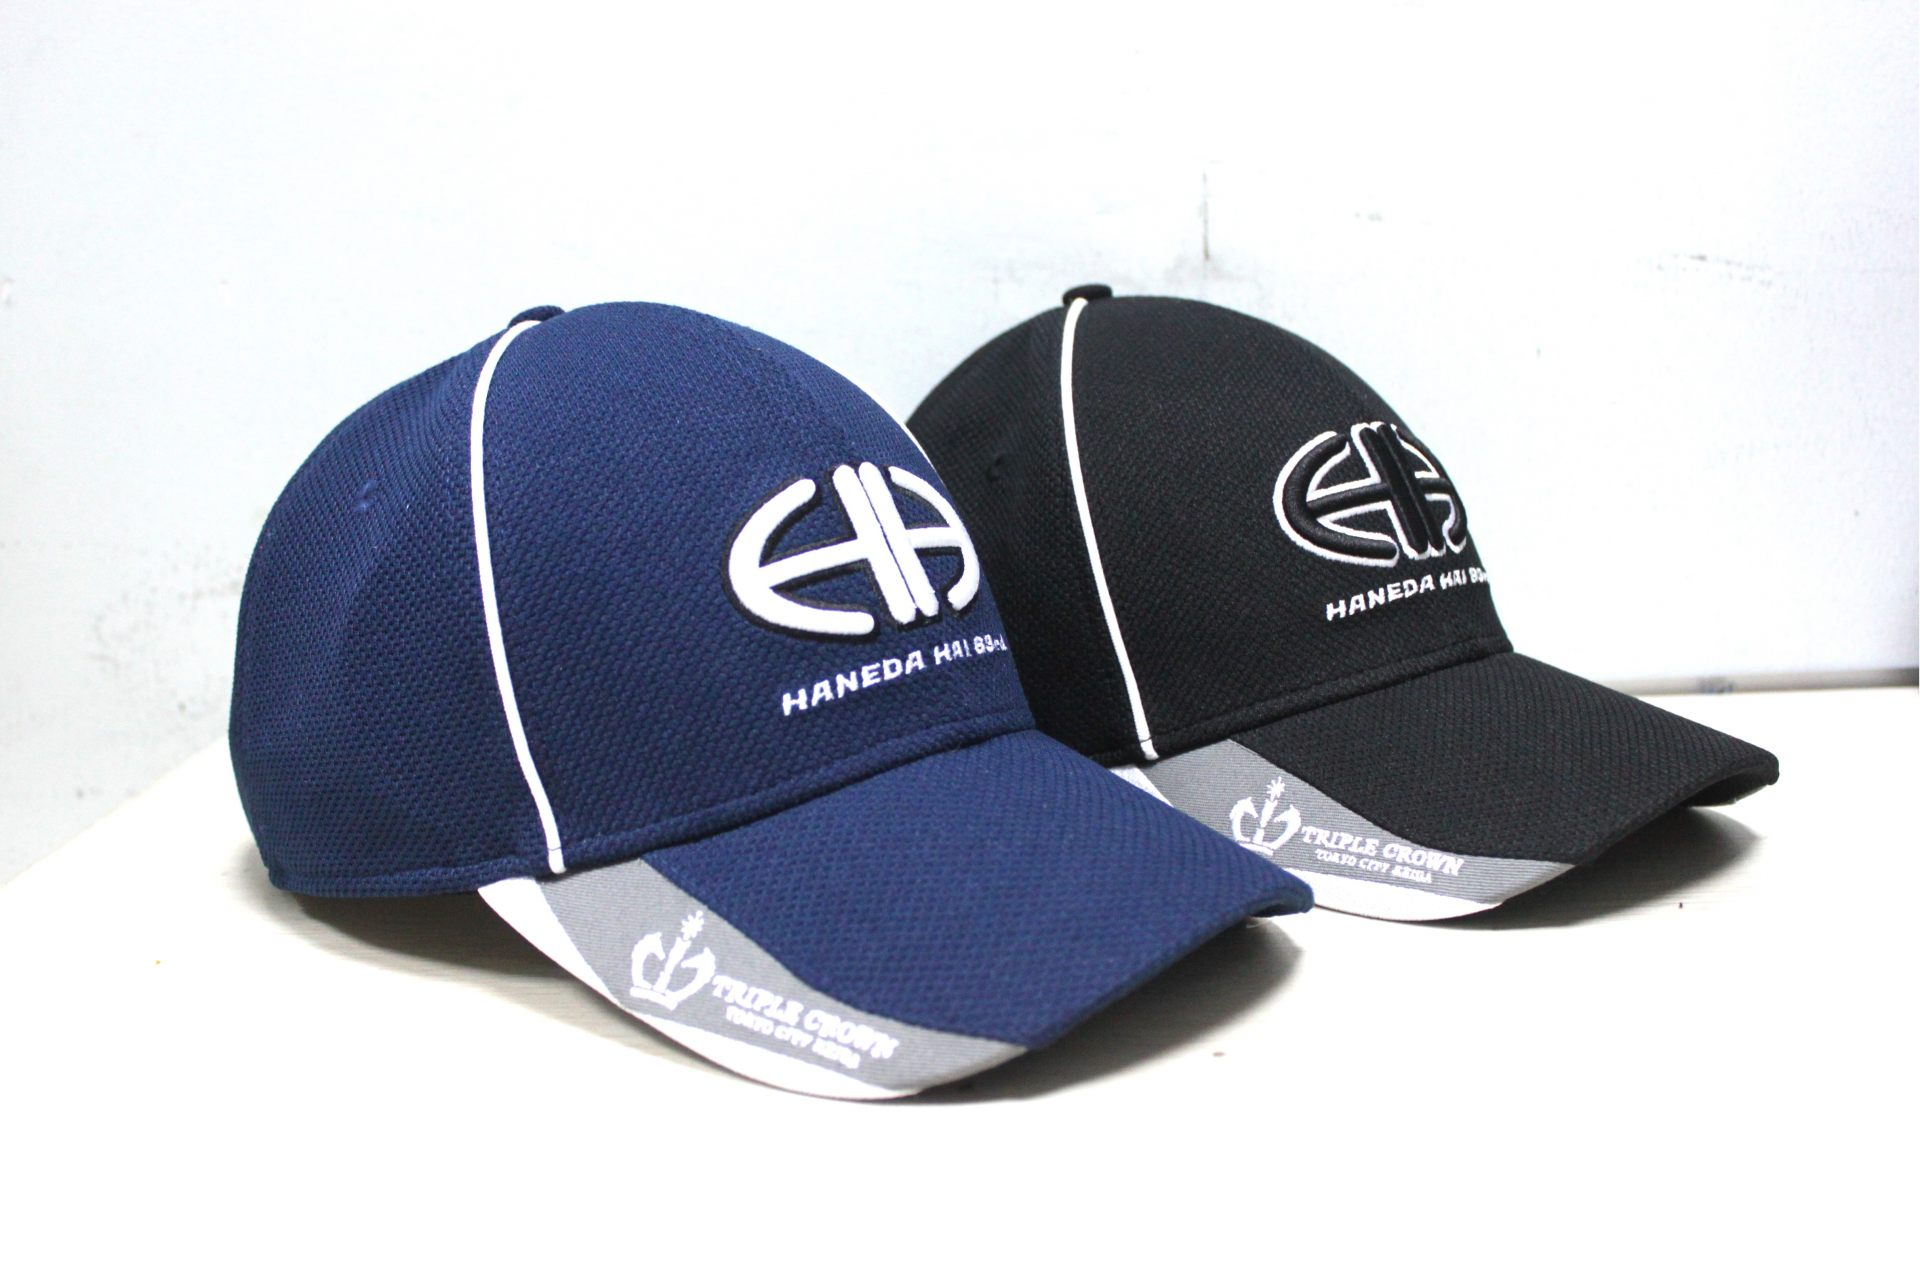 Gift D – THE HANEDA CUP Cap – 20 Points